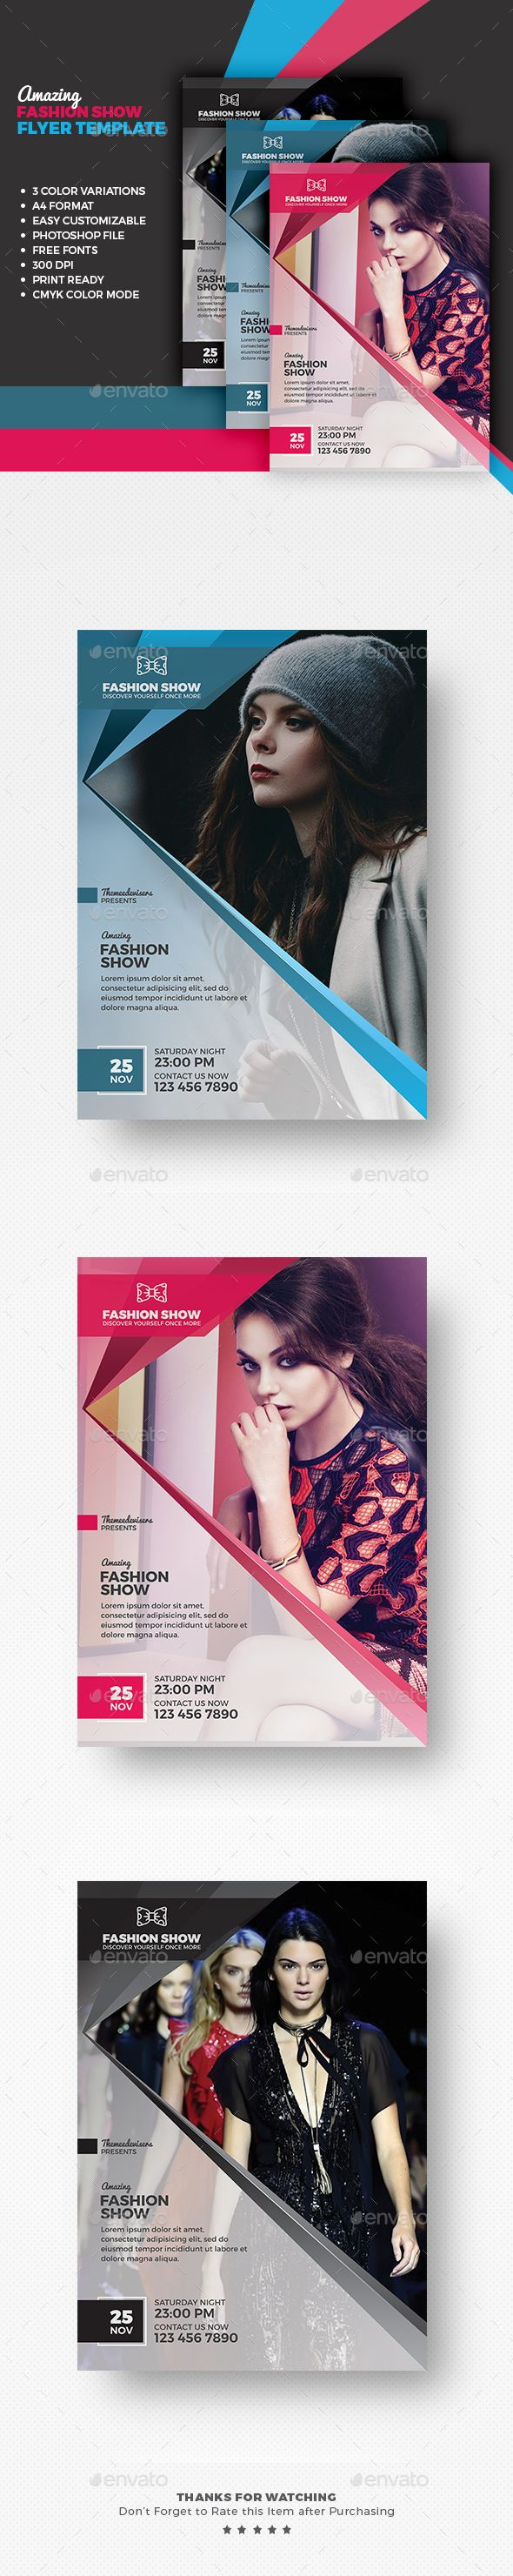 Fashion Flyer / Poster - Events Flyers Template for any Fashion related event promotion. Download http://graphicriver.net/item/fashion-flyer-poster/15693765?ref=themedevisers